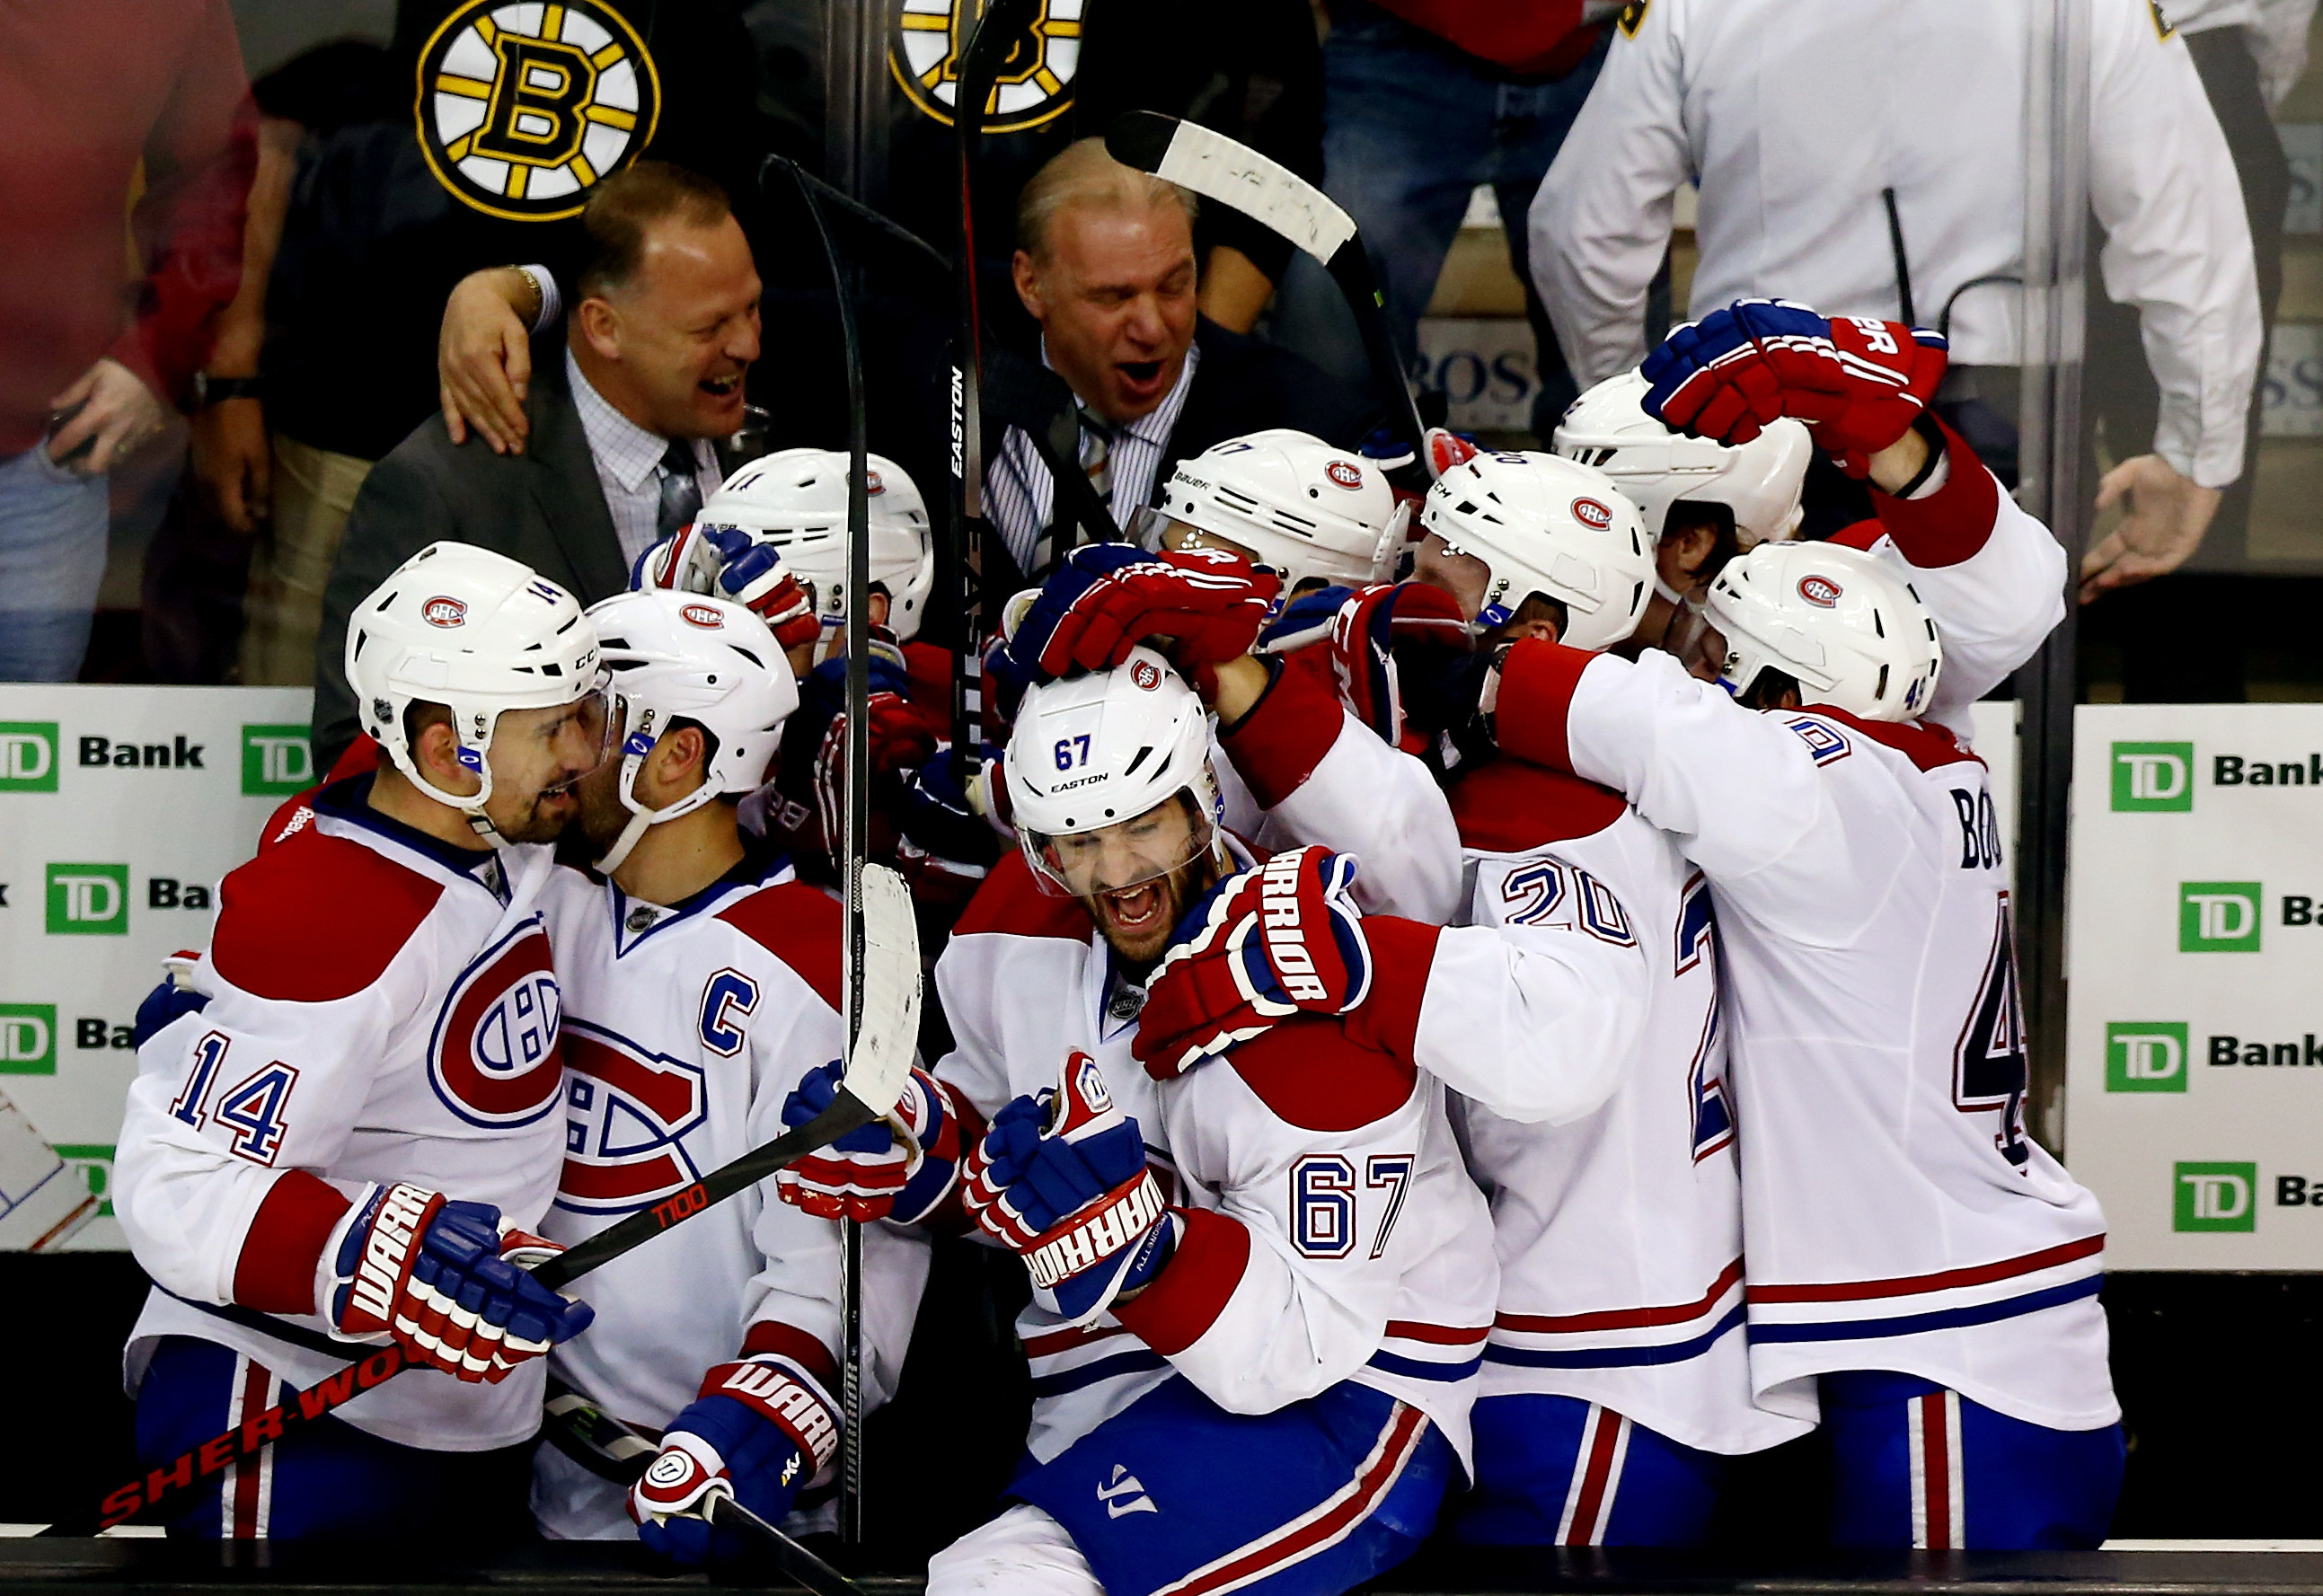 Rangers Vs Canadiens Preview And Prediction For Nhl Playoffs 2014